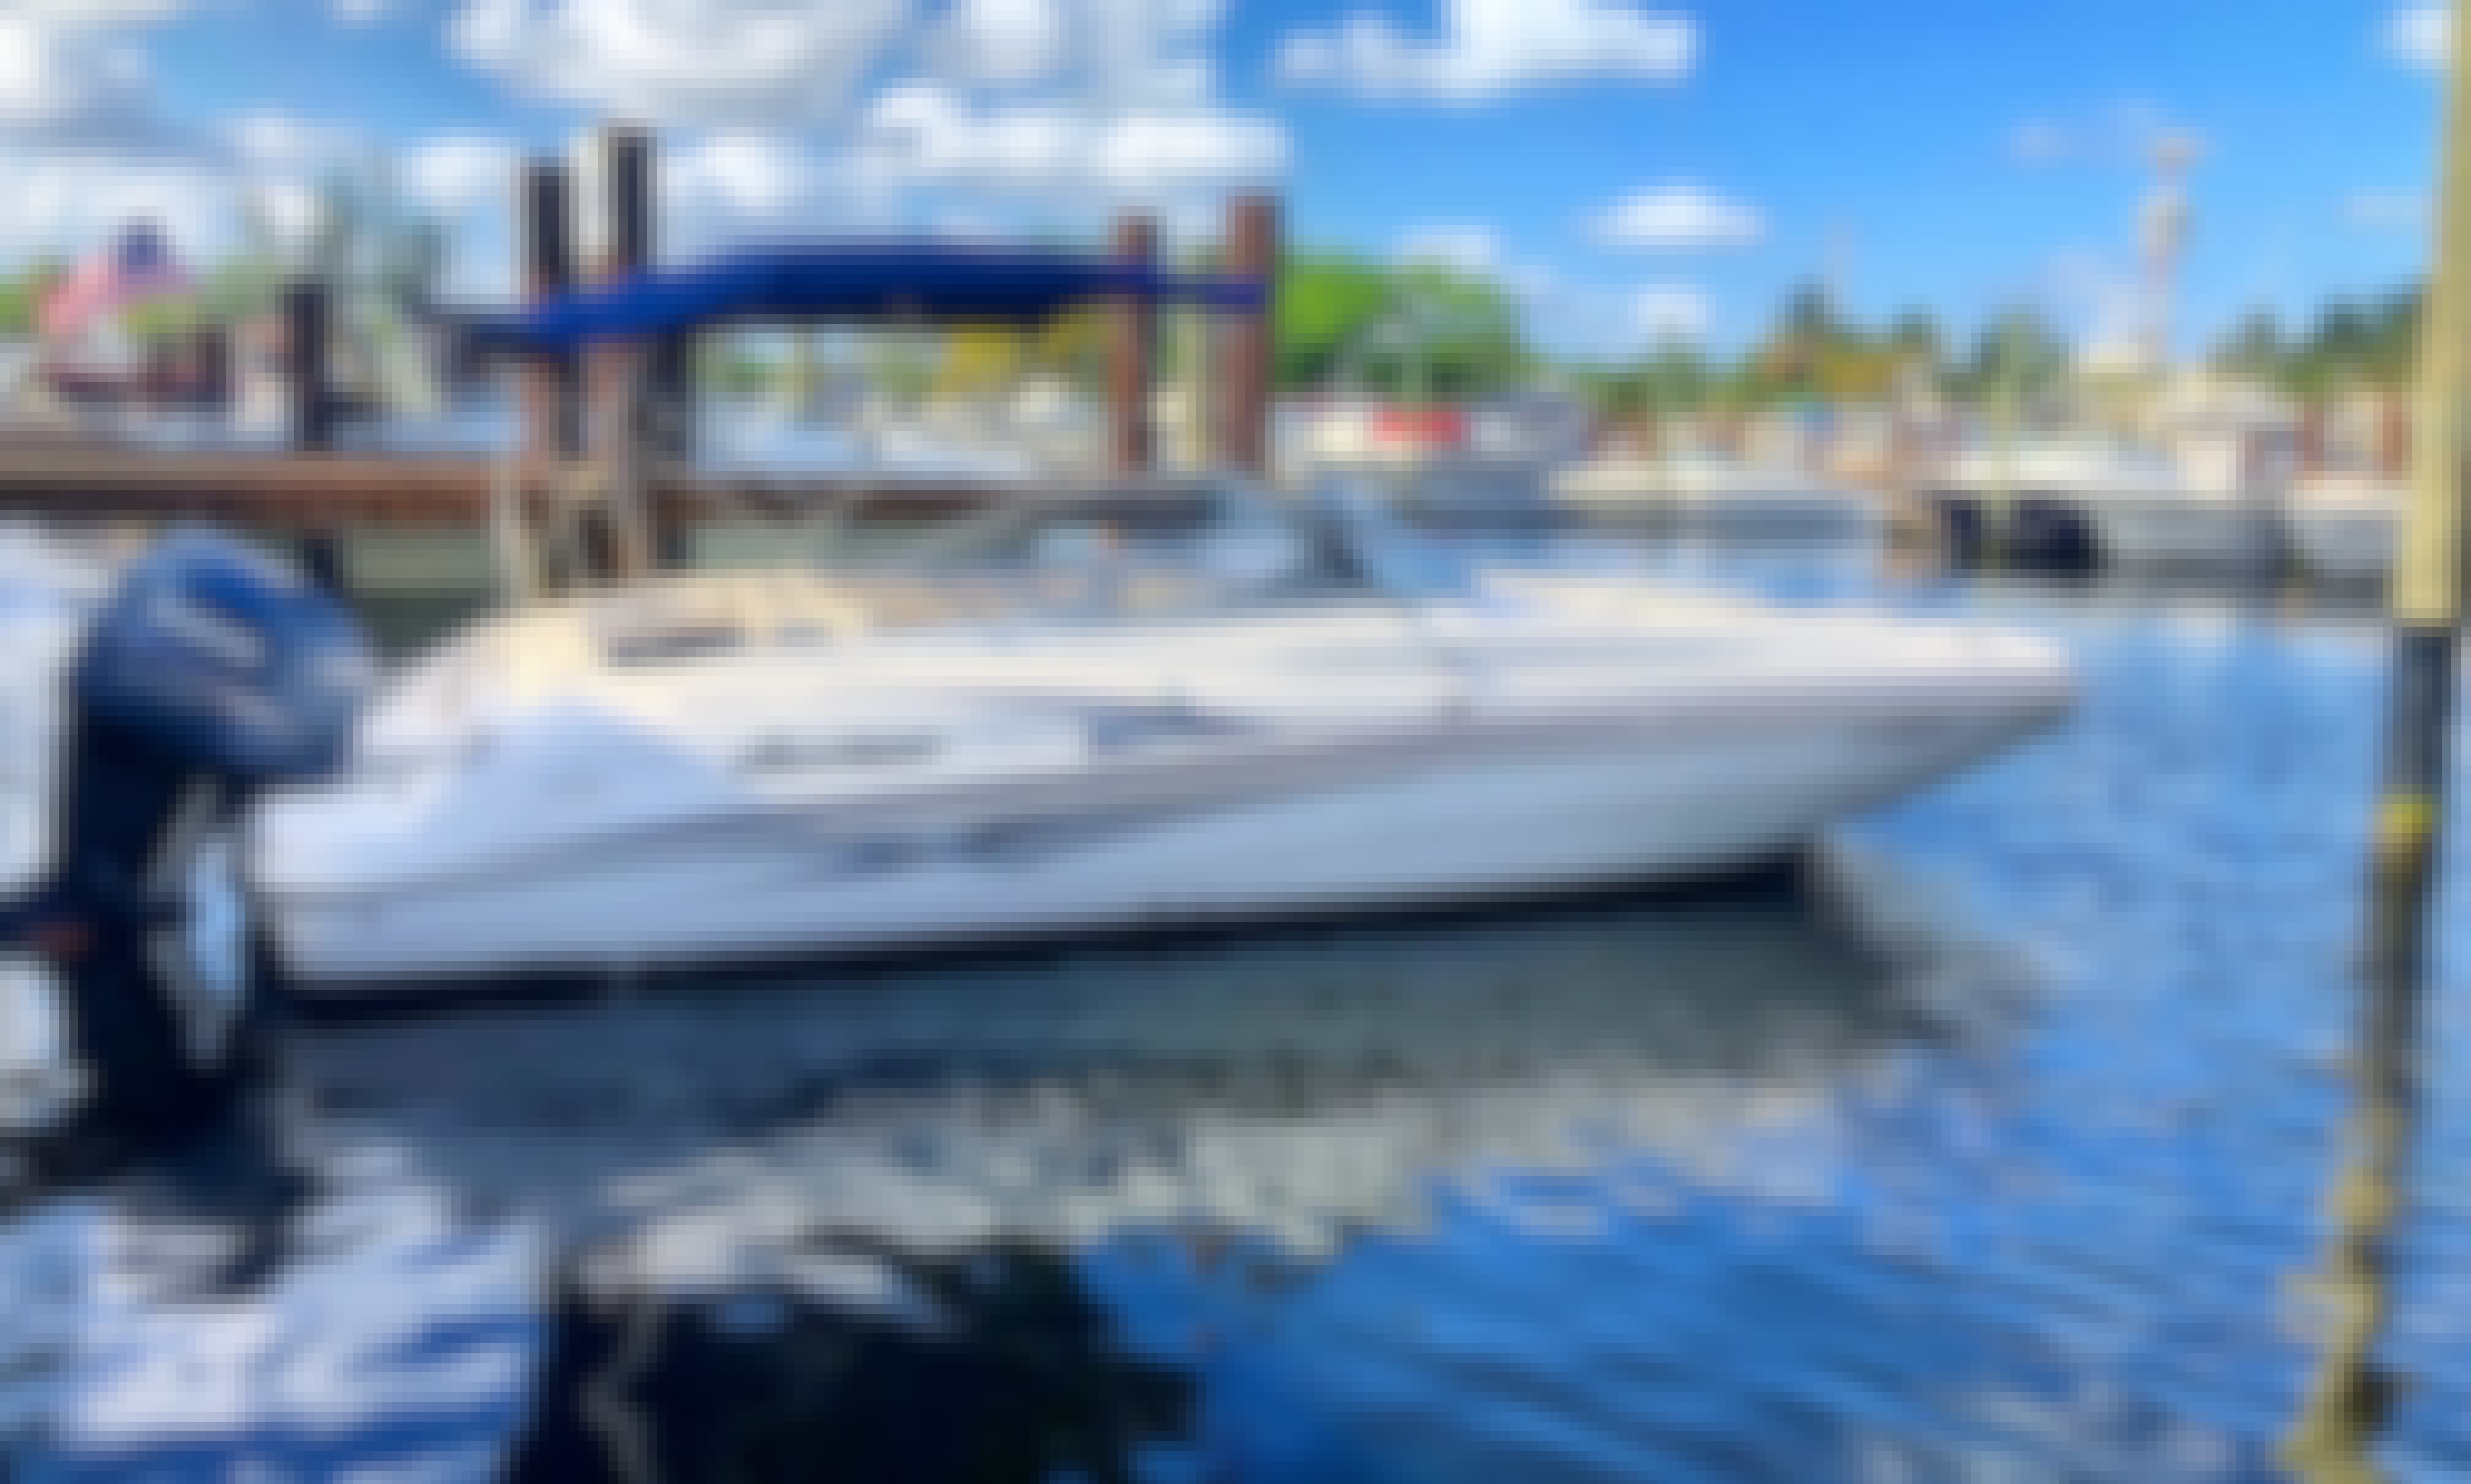 ⭐️ 24' HURRICANE DECK BOAT 225HP - SD237 DUAL CONSOLE MODEL (ANNA MARIA ISLAND) *INSURANCE INCLUDED*